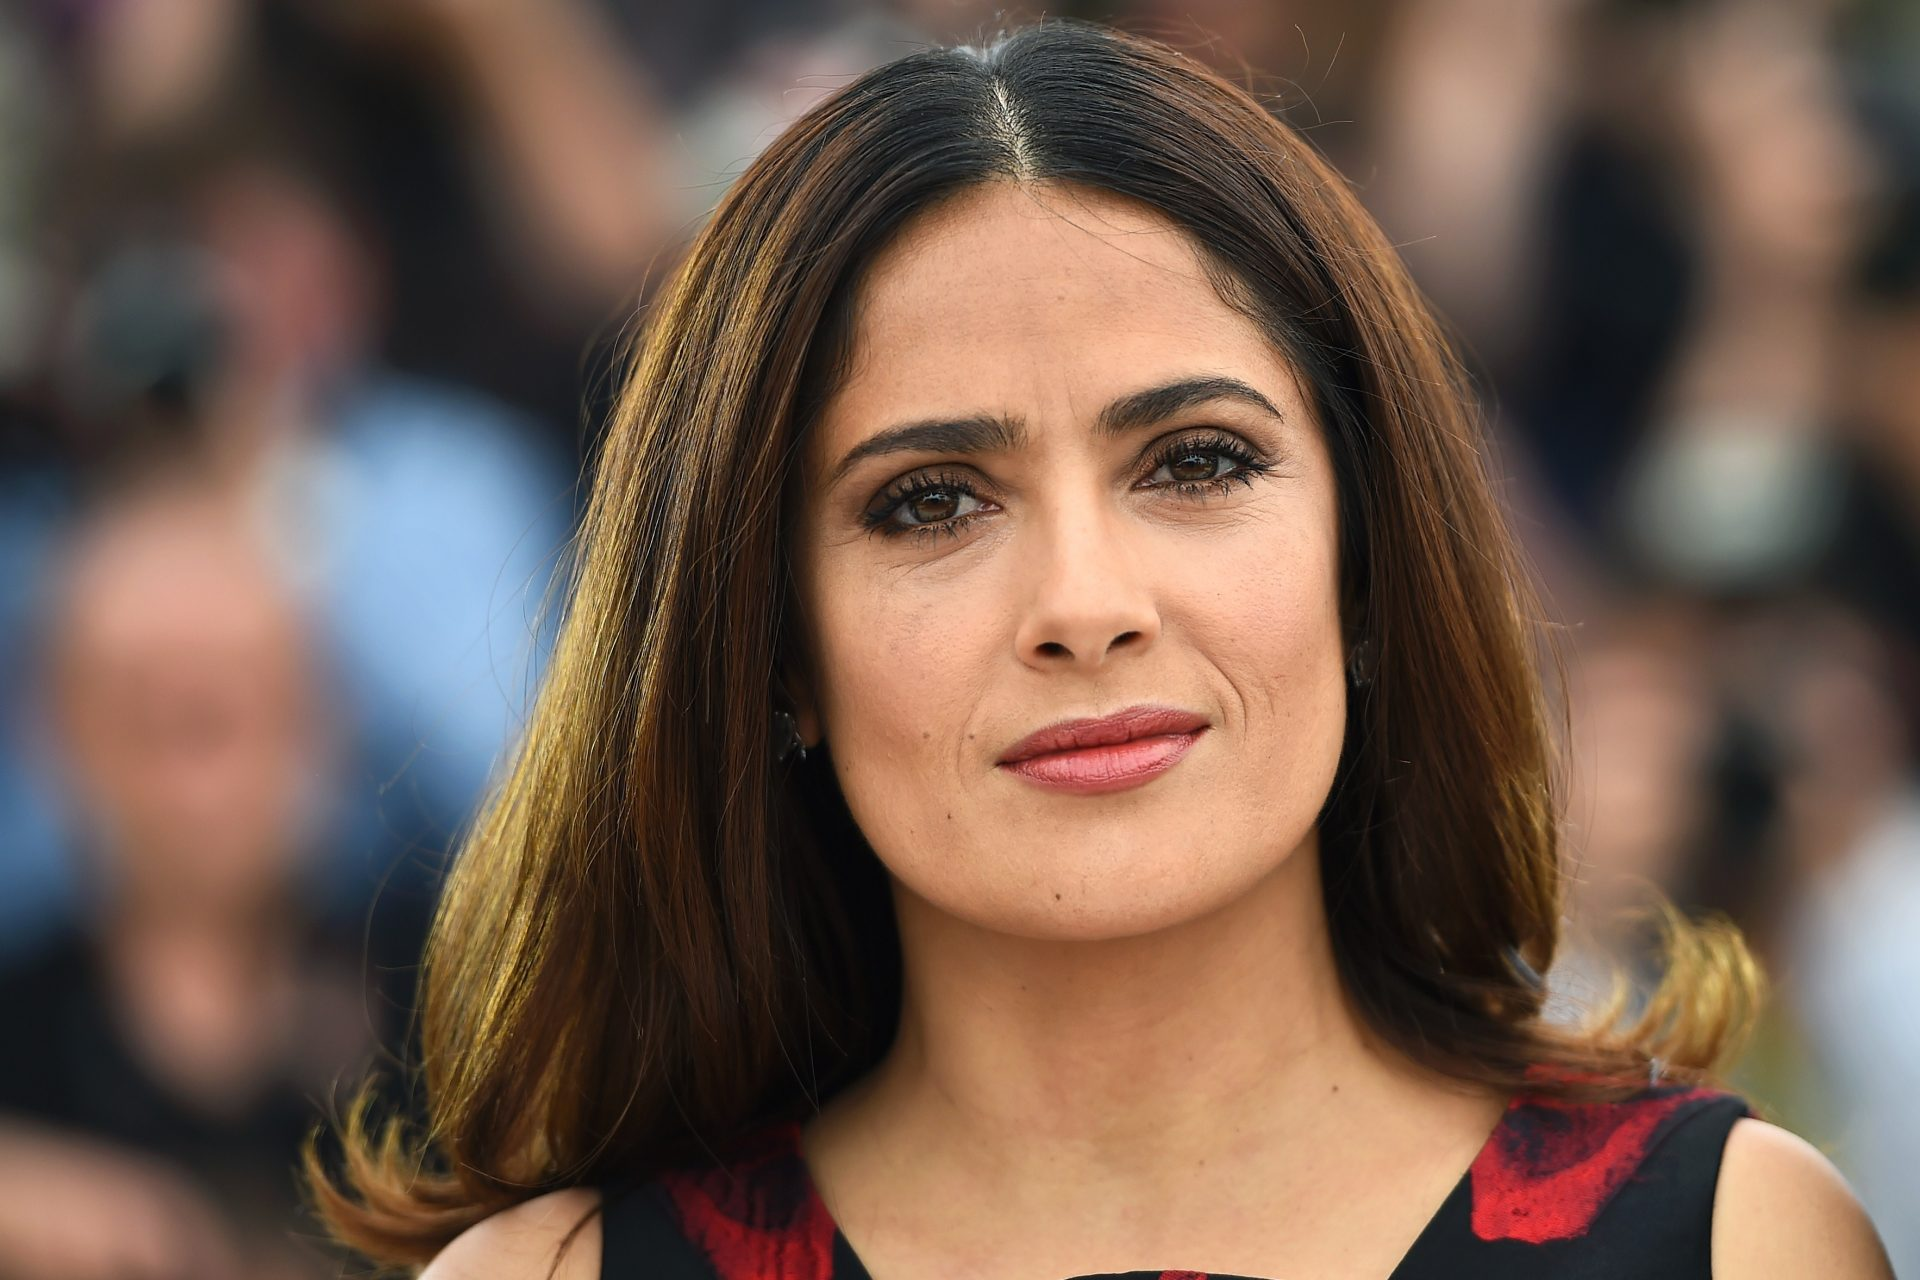 """Salma Hayek survived COVID-19 but felt awful: """"I'd rather die at home"""""""